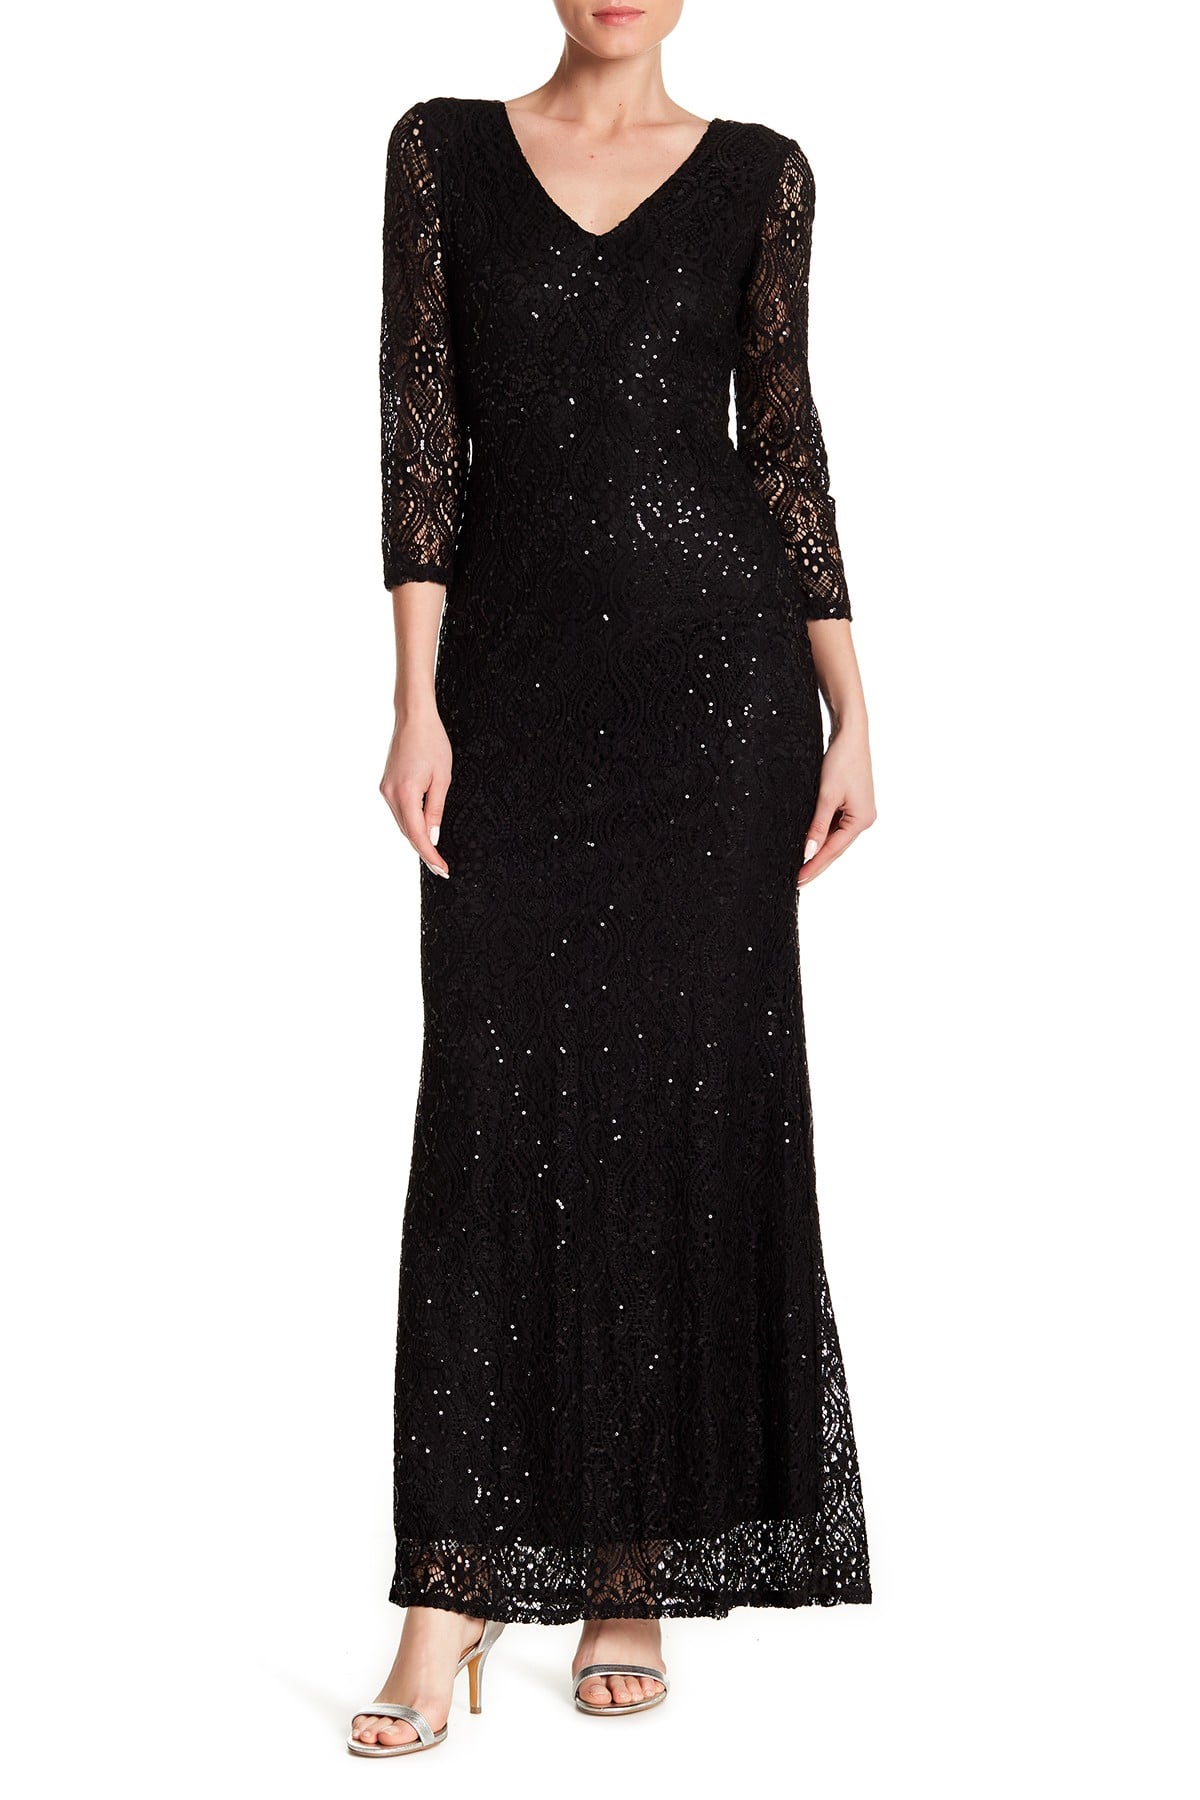 dfc2b7ad4 Nordstrom Rack Lace sequin Gown @ $25.35 - Slickdeals.net